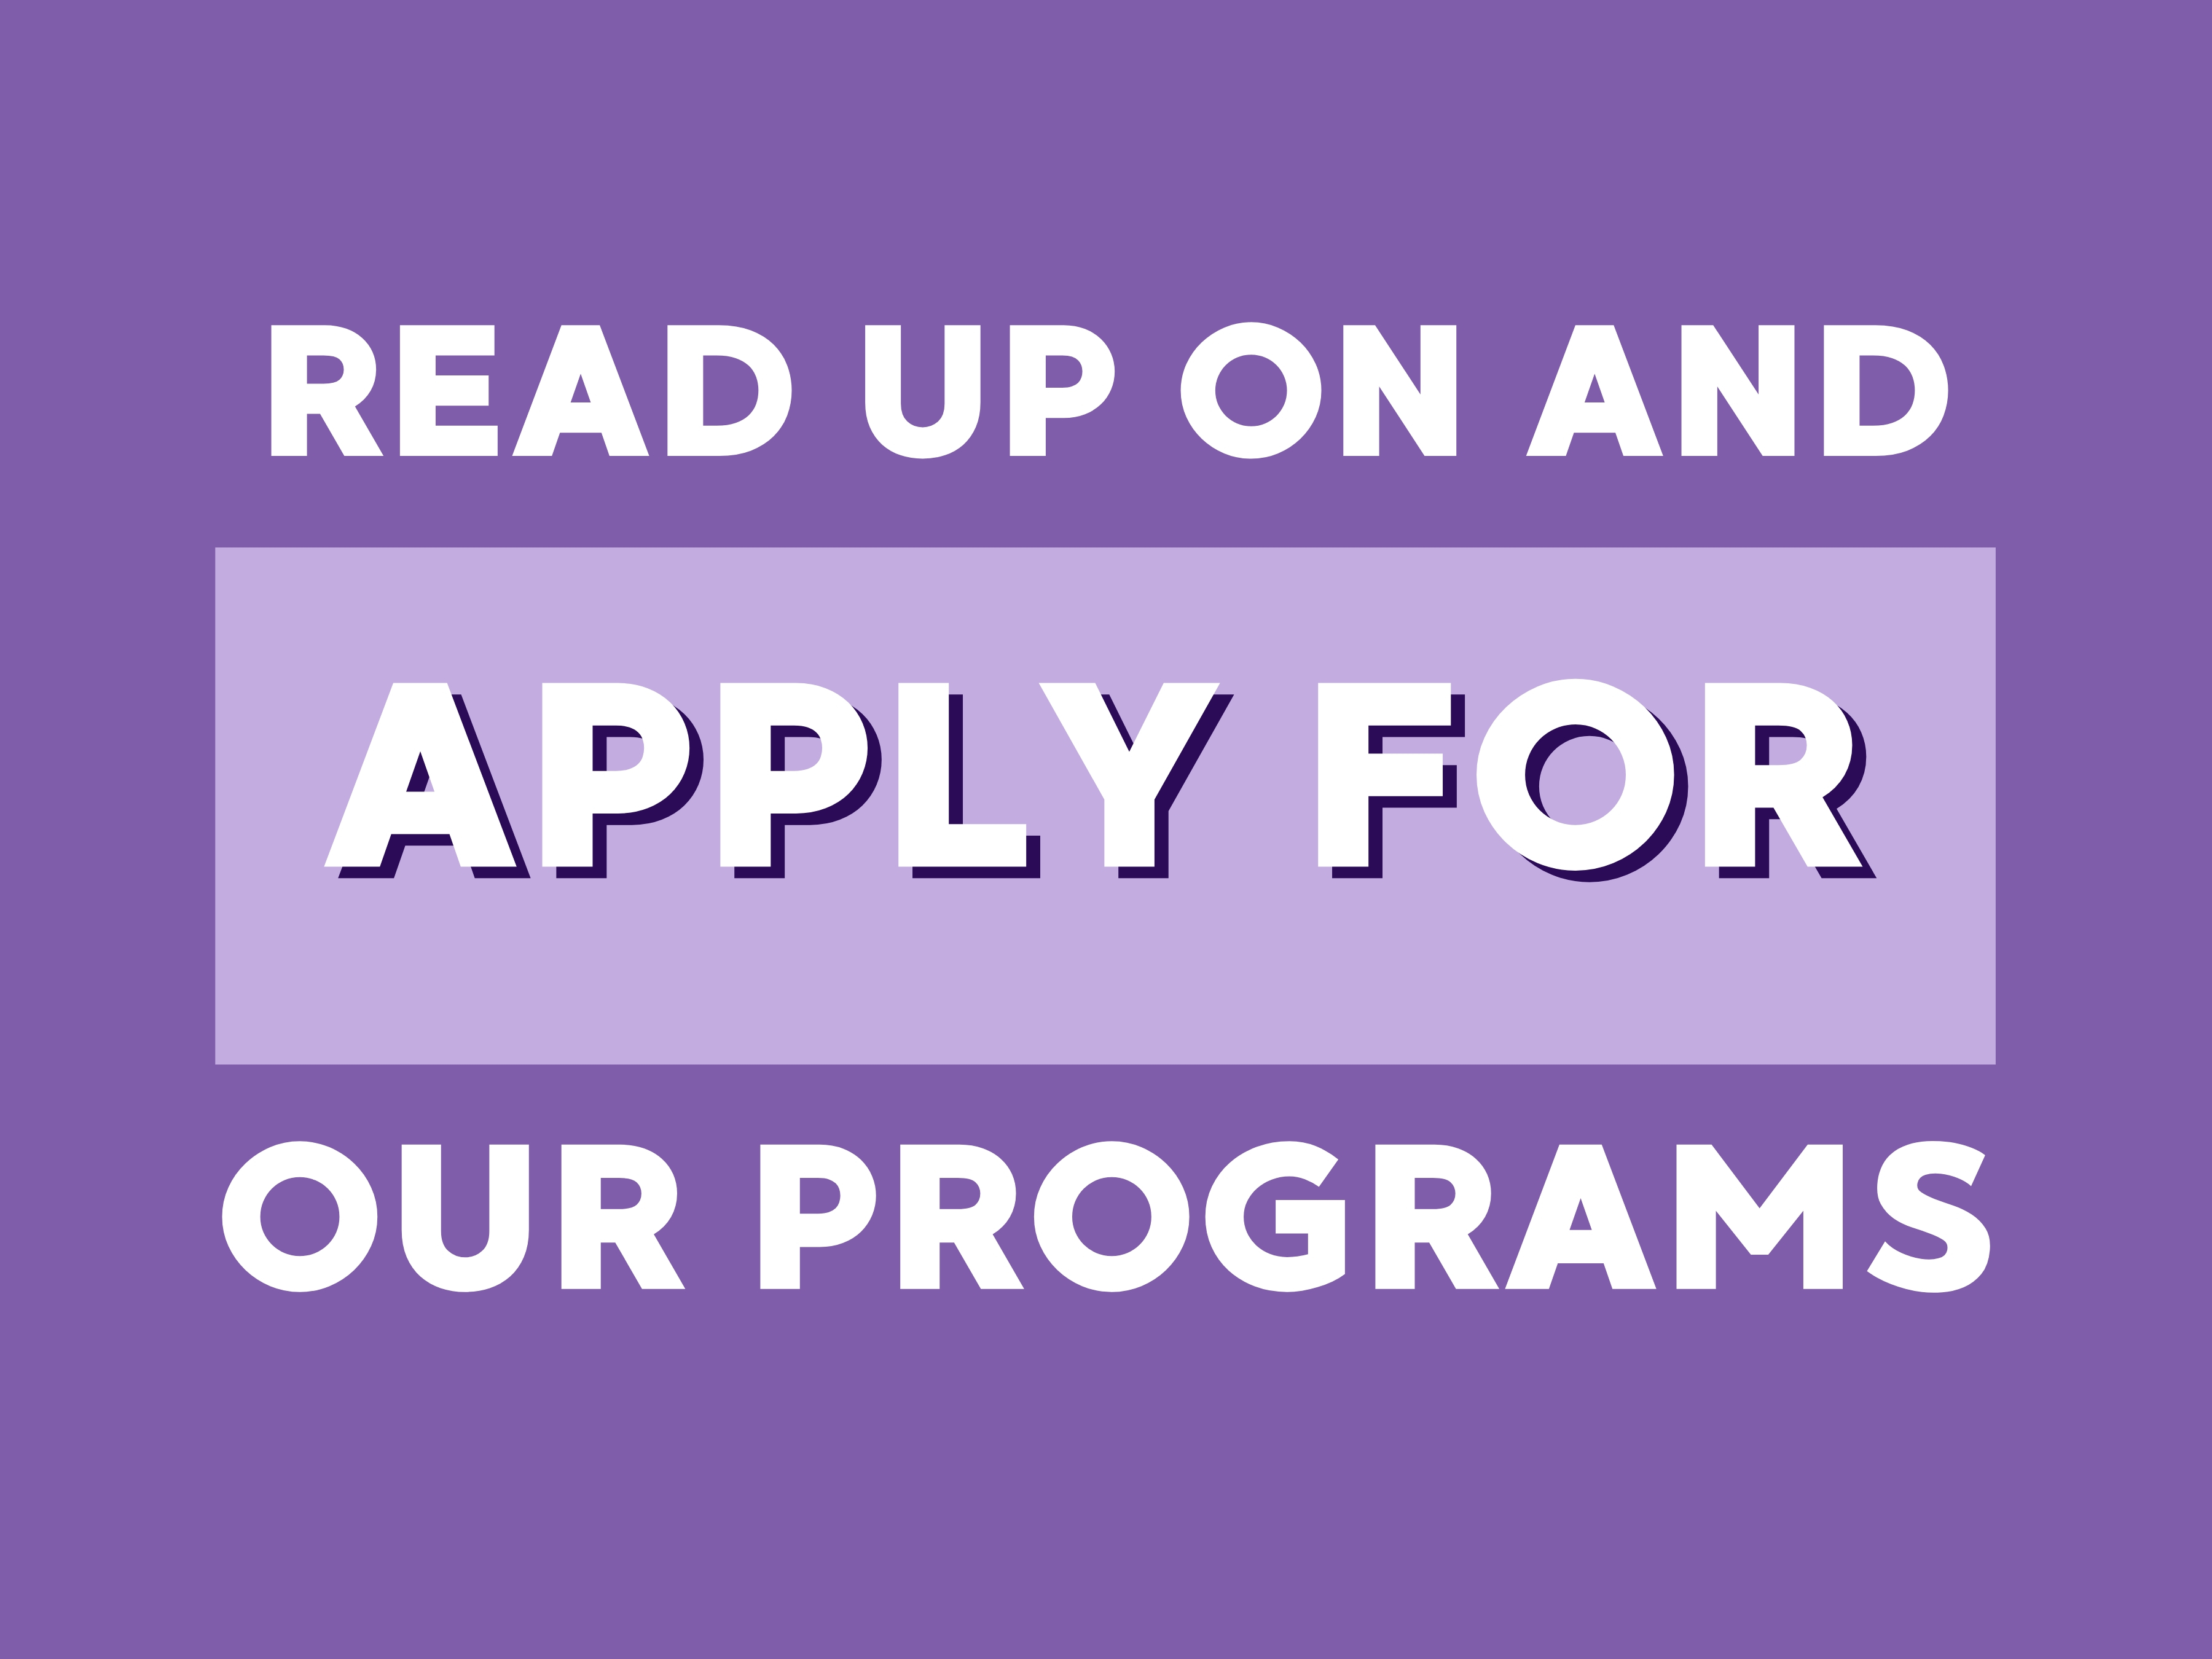 Read Up On and Apply for Our Programs